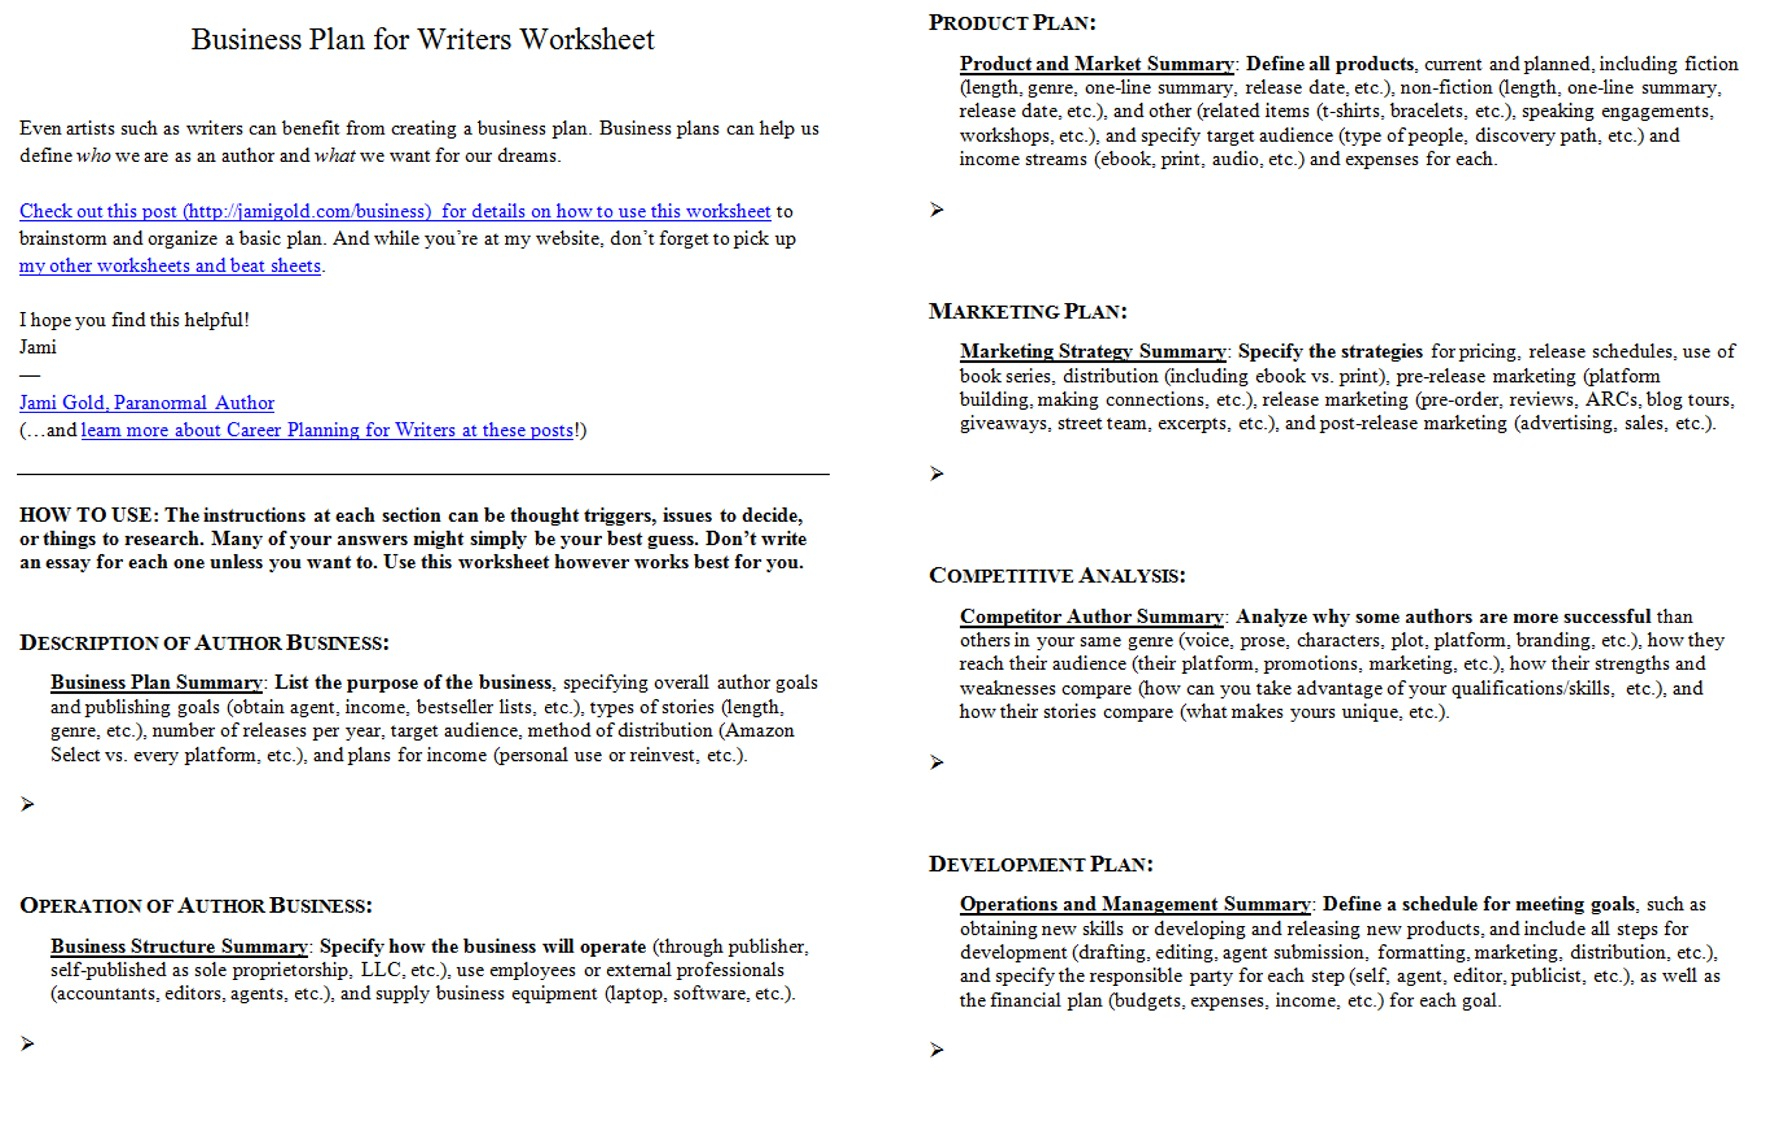 Aldiablosus  Wonderful Worksheets For Writers  Jami Gold Paranormal Author With Likable Screen Shot Of Both Pages Of The Business Plan For Writers Worksheet With Divine Cost Benefit Analysis Worksheet Also  Grade Science Worksheets In Addition Writing Compound Sentences Worksheet And Geometry Th Grade Worksheets As Well As Bank On It Worksheet Answers Additionally Irrrl Worksheet From Jamigoldcom With Aldiablosus  Likable Worksheets For Writers  Jami Gold Paranormal Author With Divine Screen Shot Of Both Pages Of The Business Plan For Writers Worksheet And Wonderful Cost Benefit Analysis Worksheet Also  Grade Science Worksheets In Addition Writing Compound Sentences Worksheet From Jamigoldcom